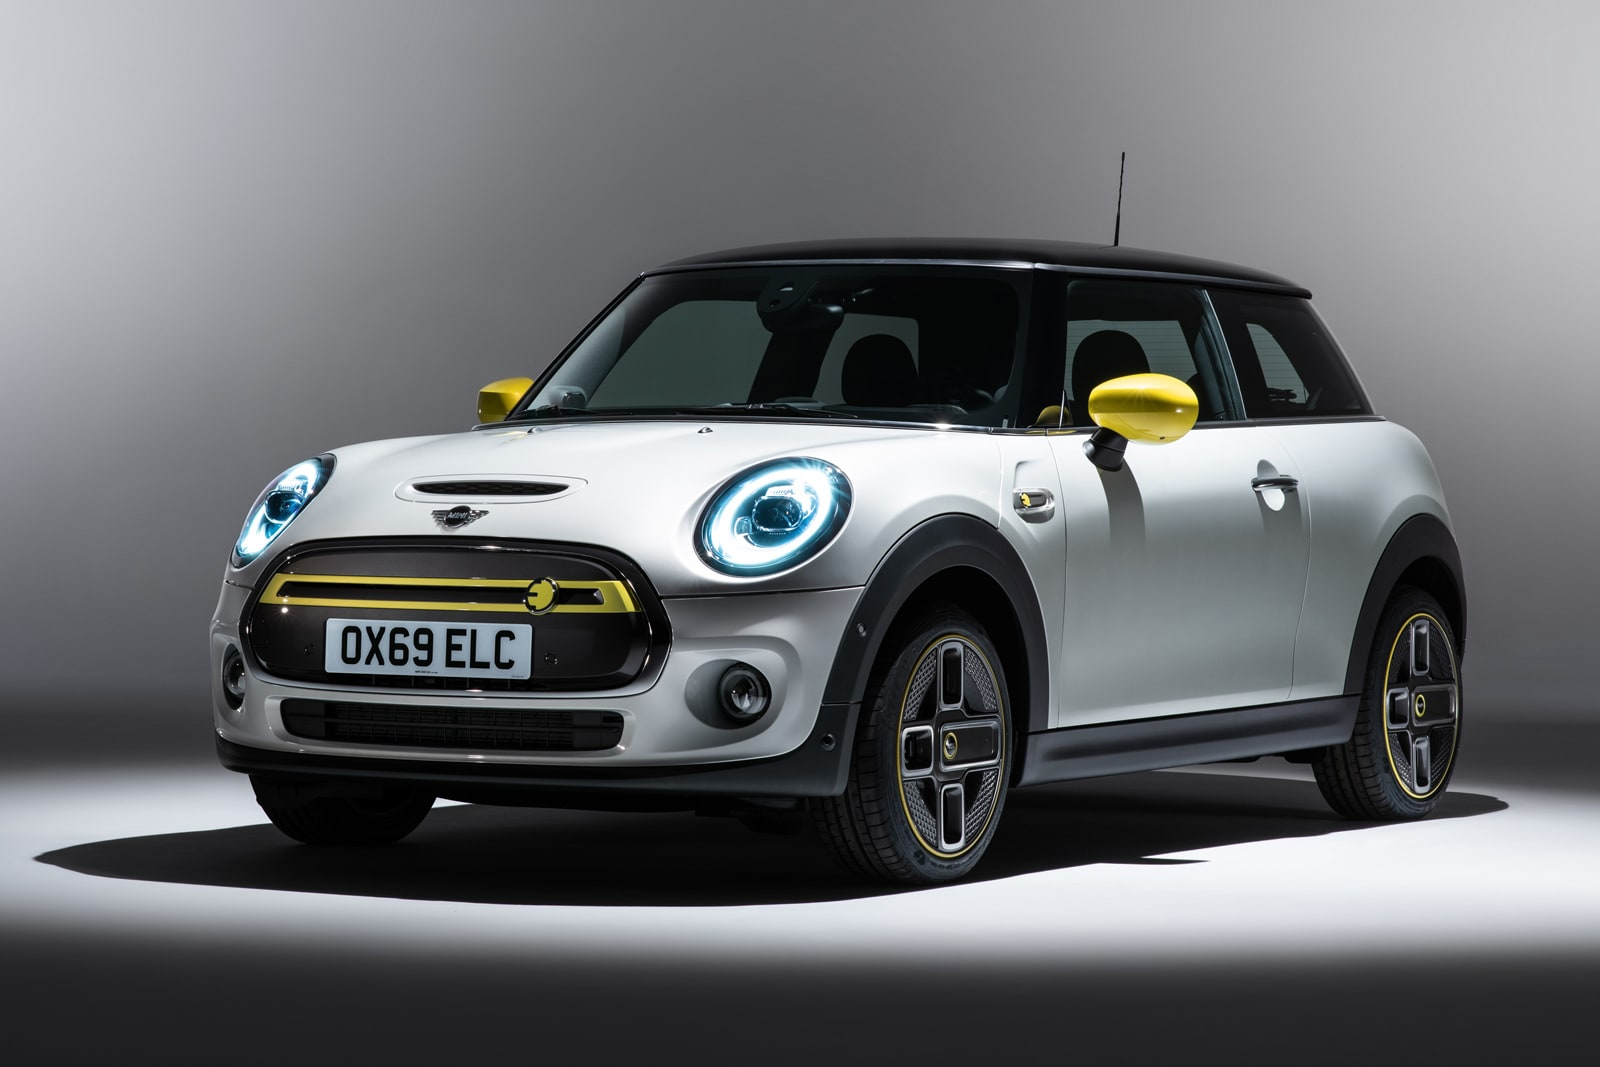 The first all-electric Mini arrives in March 2020